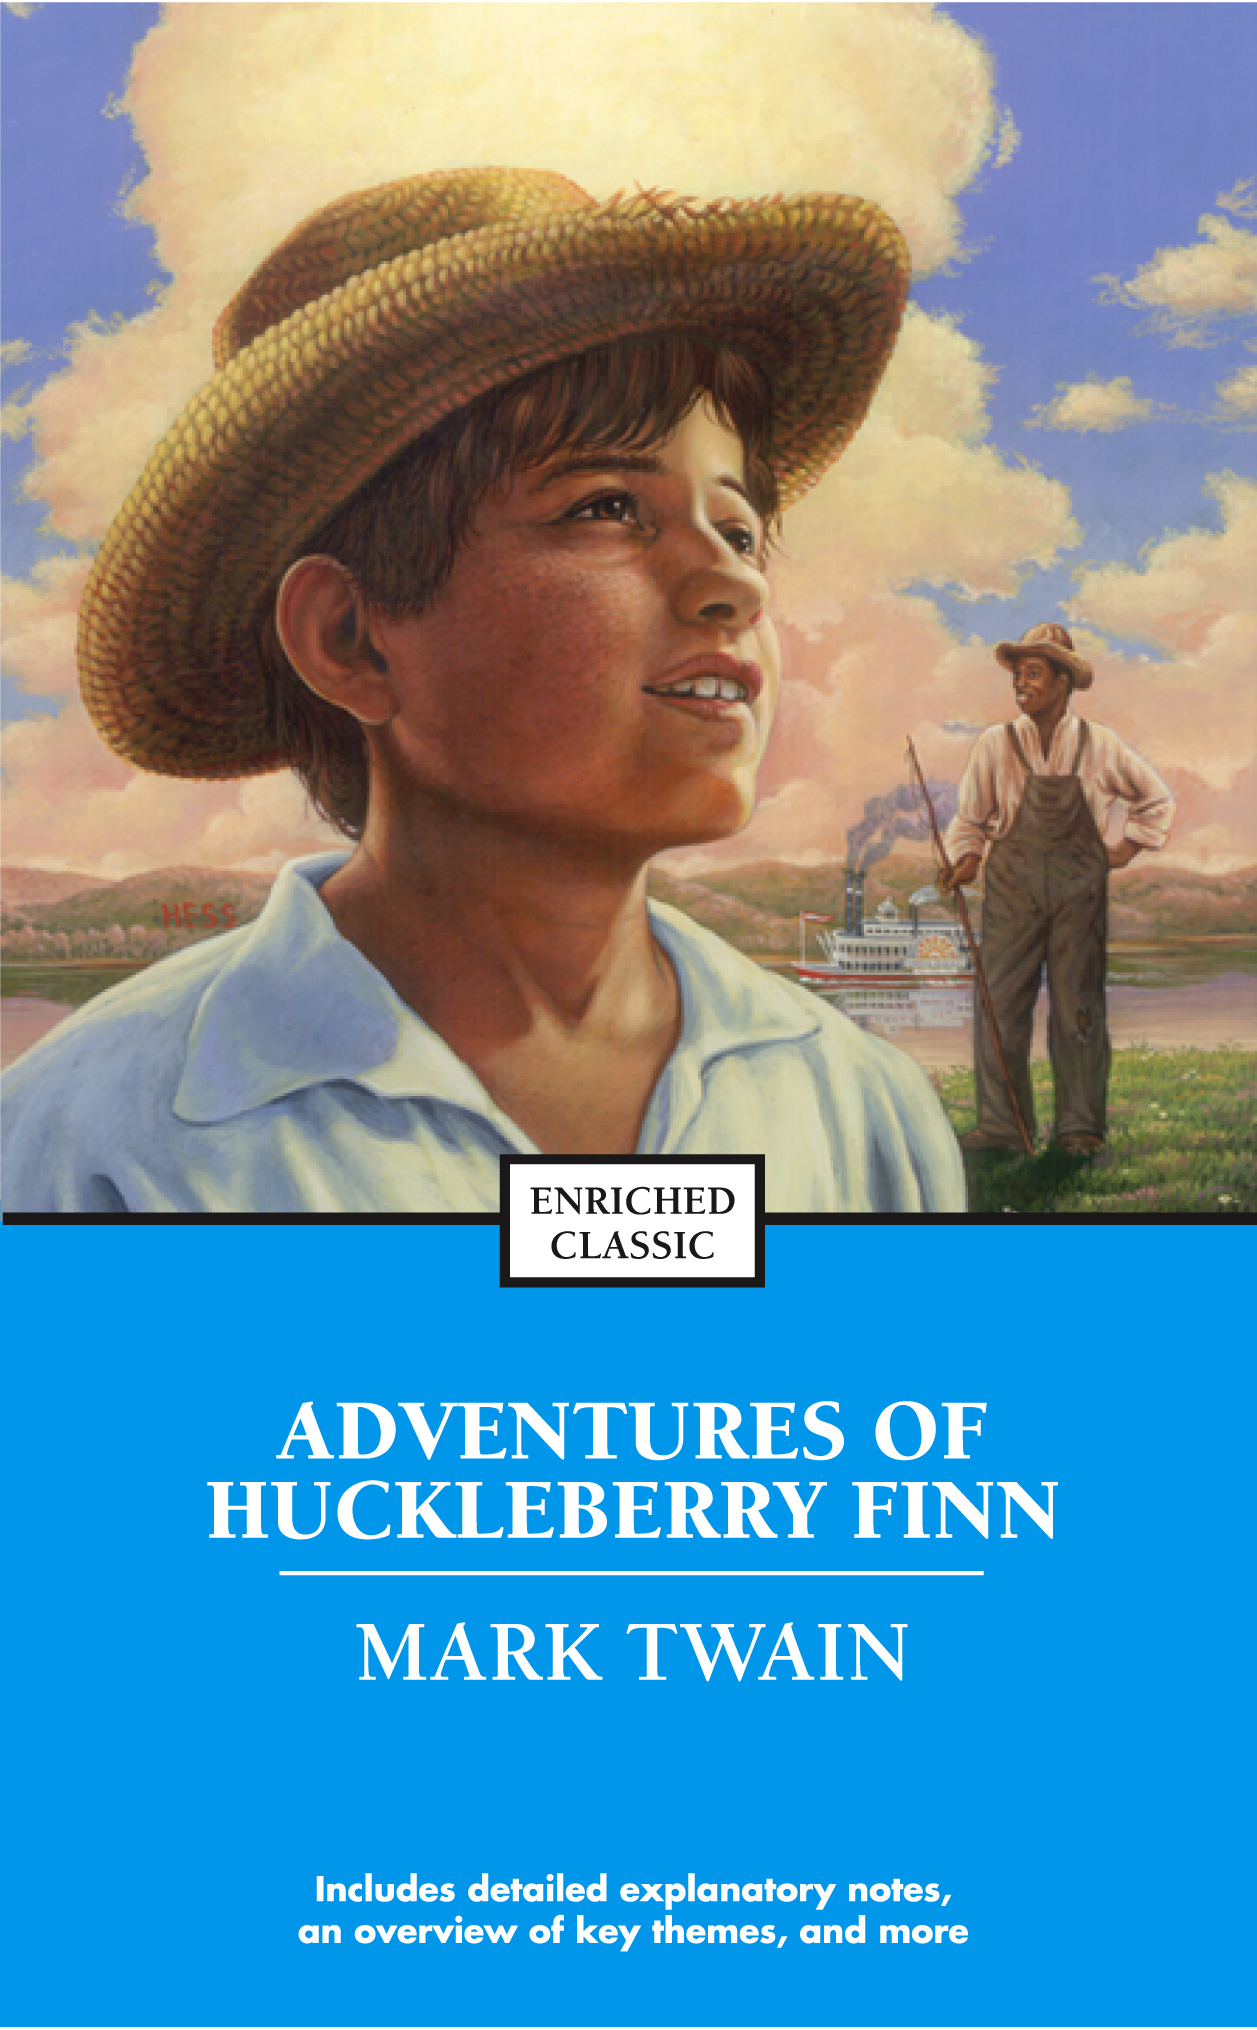 the life in the southern mississippi in the adventures of huckleberry finn by mark twain 2015-12-17  the writing style of mark twain  the adventures of huckleberry finn by mark twain  life on the mississippi - how twain influenced the story.